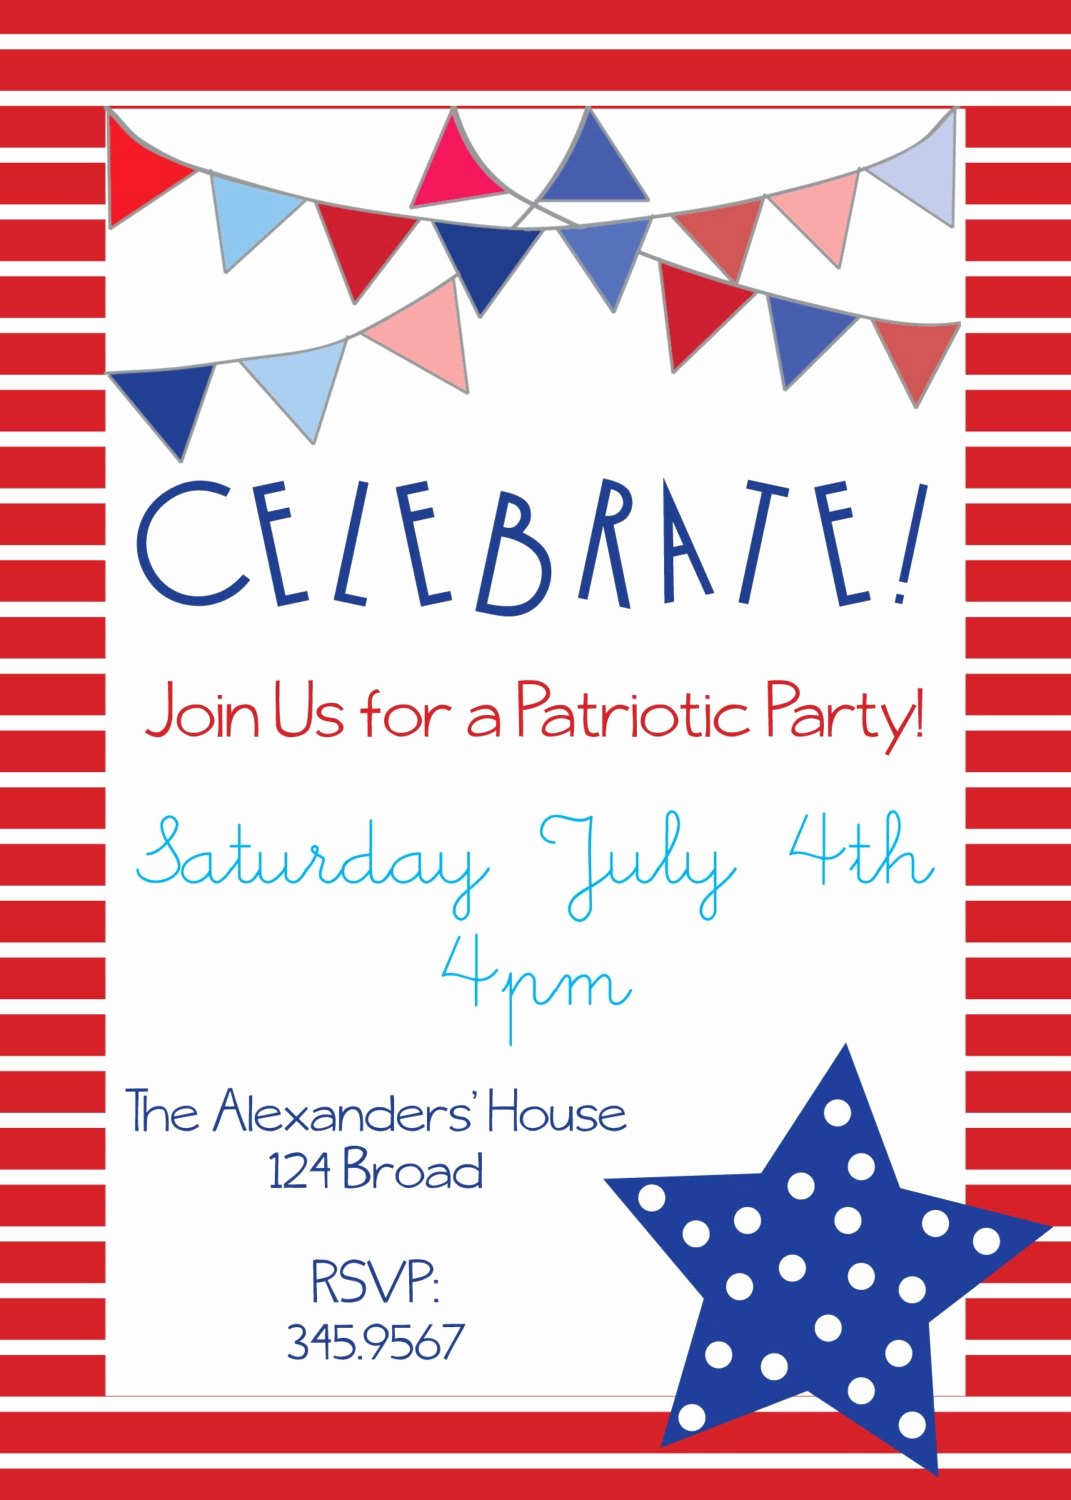 Fourth Of July Party Invitations Elegant Patriotic Party Invitations for Memorial Day 4th Of July or